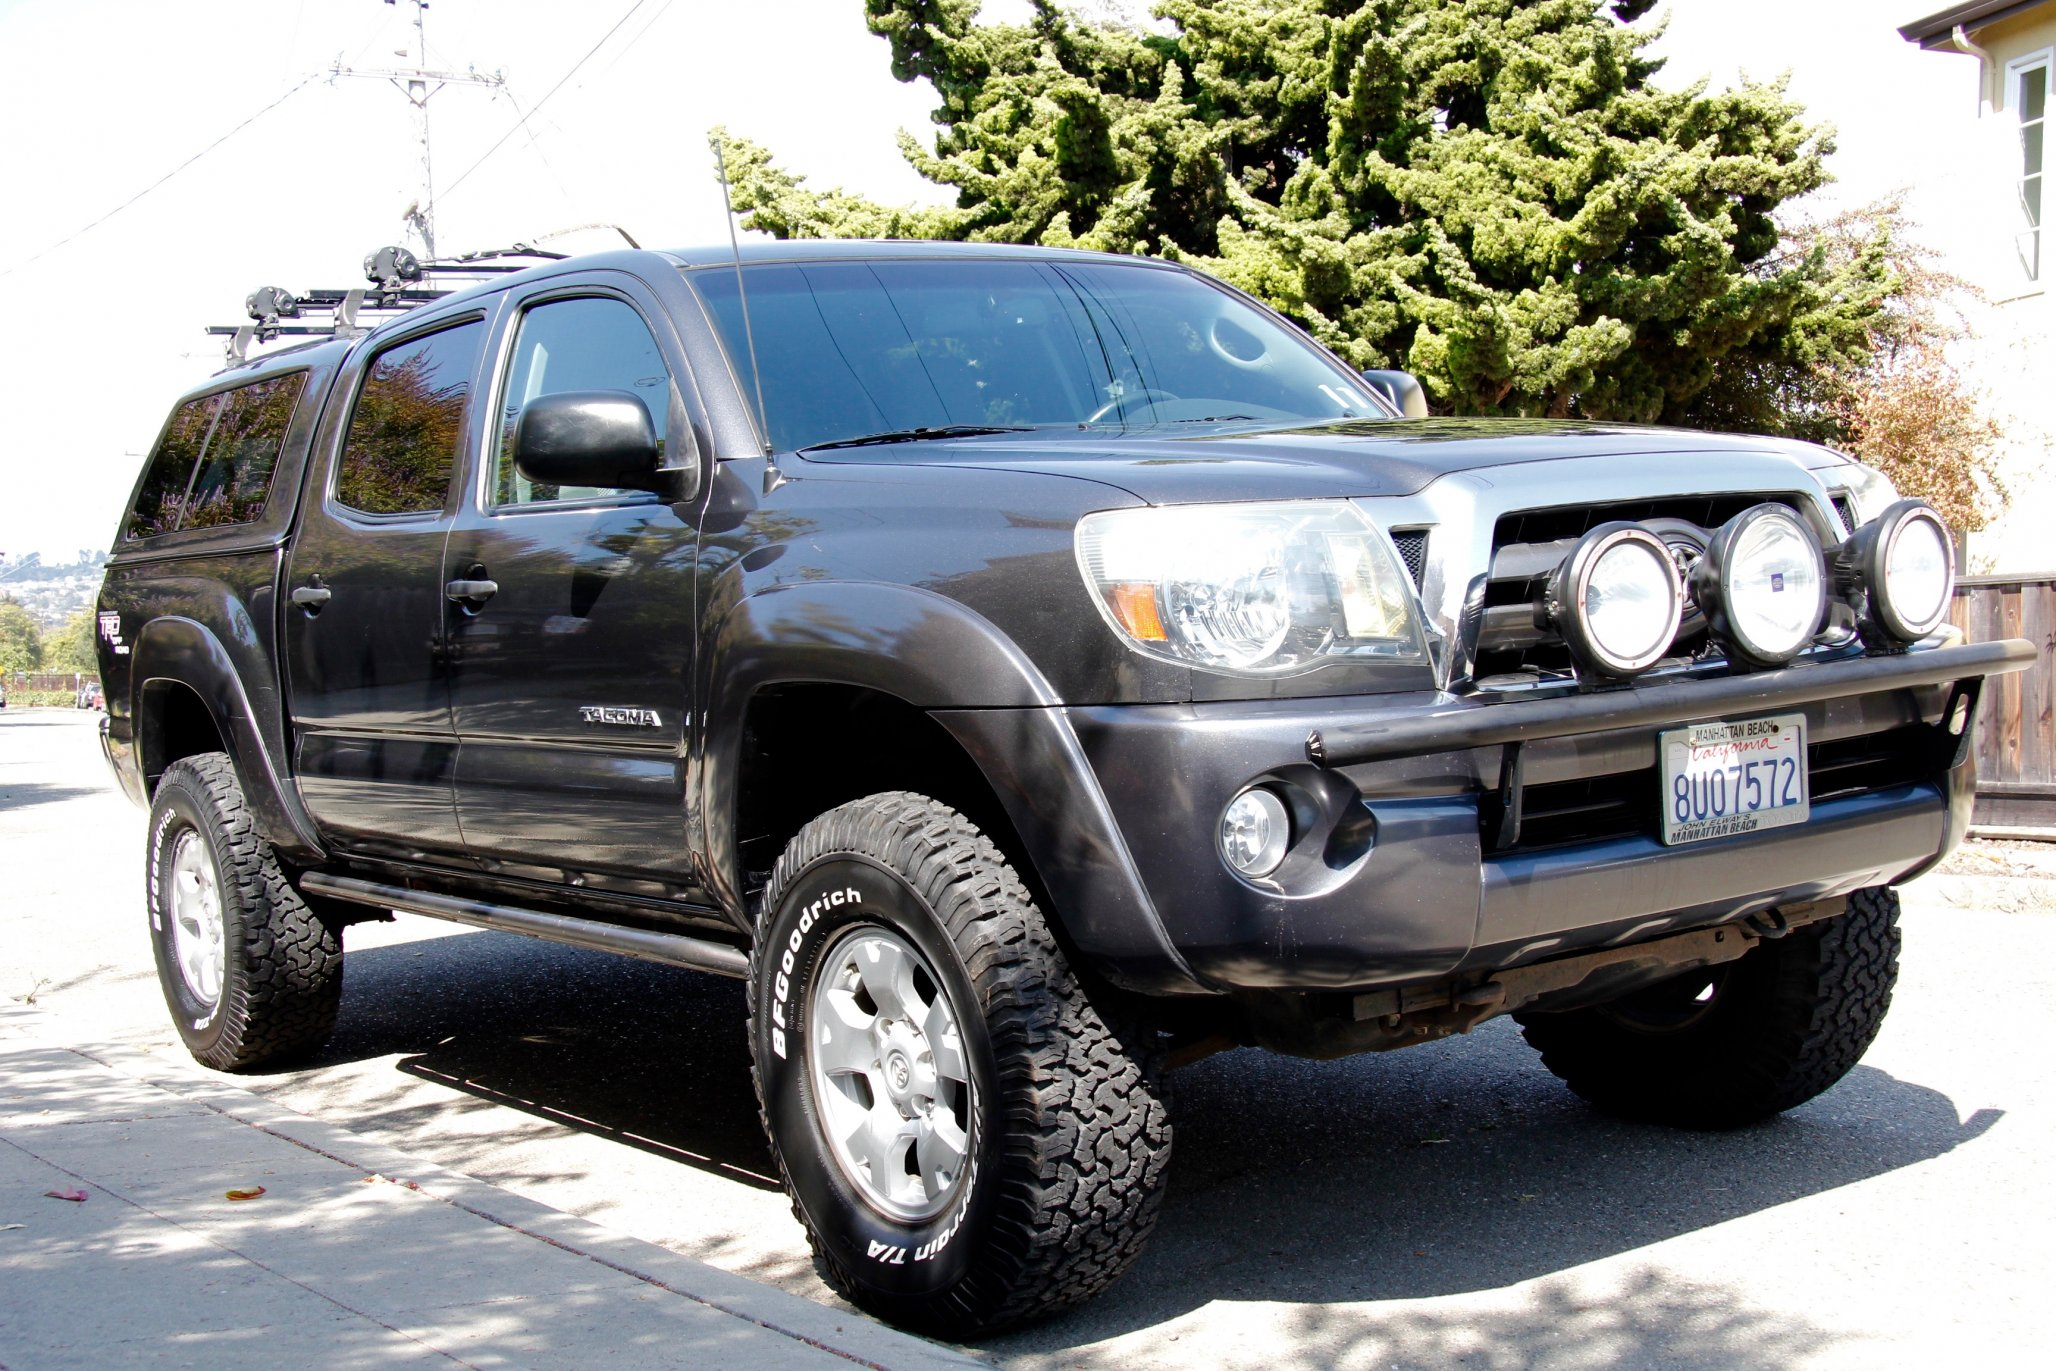 2014 toyota tacoma for sale in tacoma wa autotrader autos post. Black Bedroom Furniture Sets. Home Design Ideas